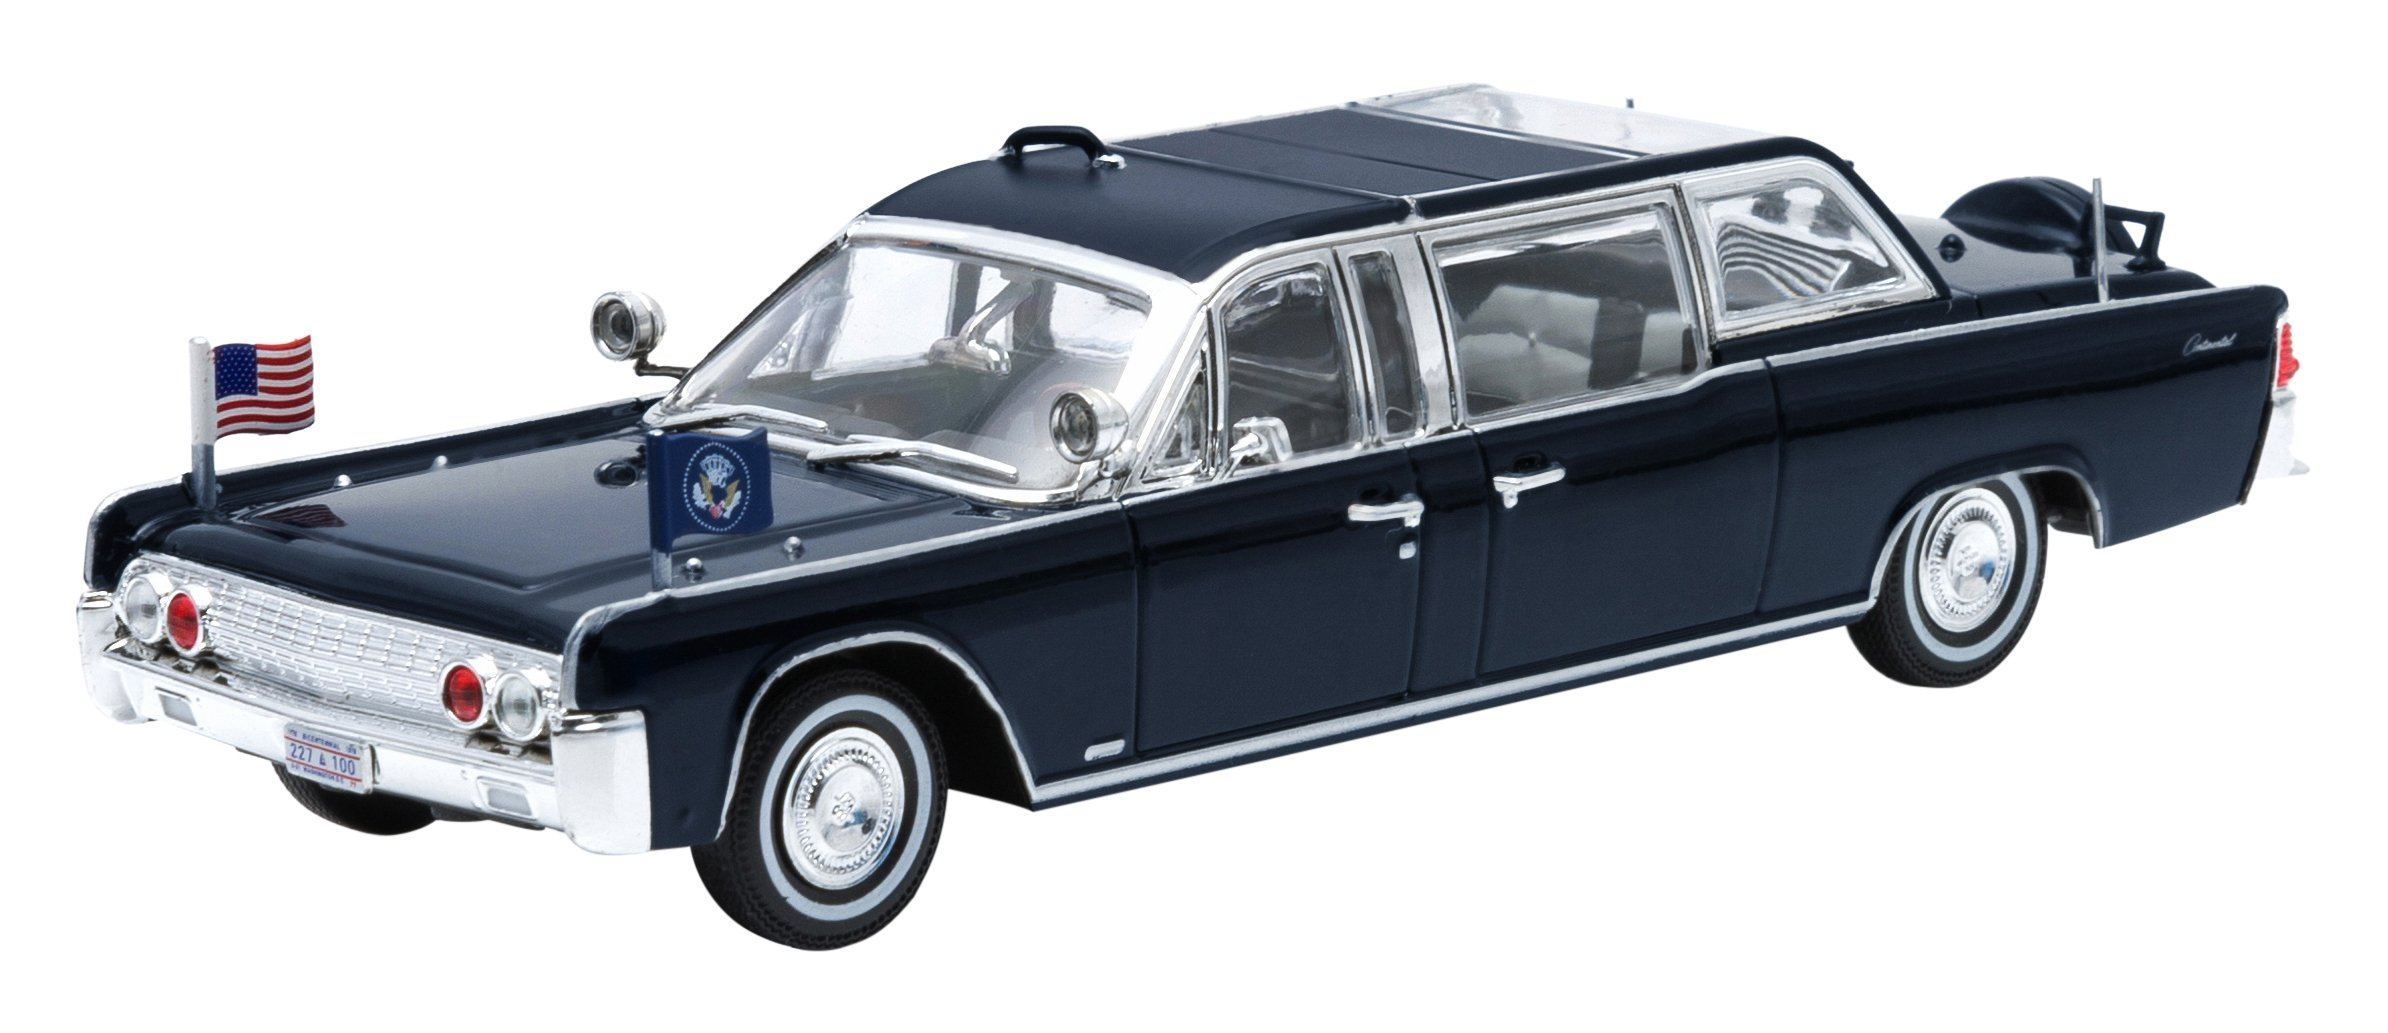 Greenlight Collectibles Presidential Limo 1961 Lincoln Continental SS-100-X John Kennedy Vehicle (1:43 Scale)